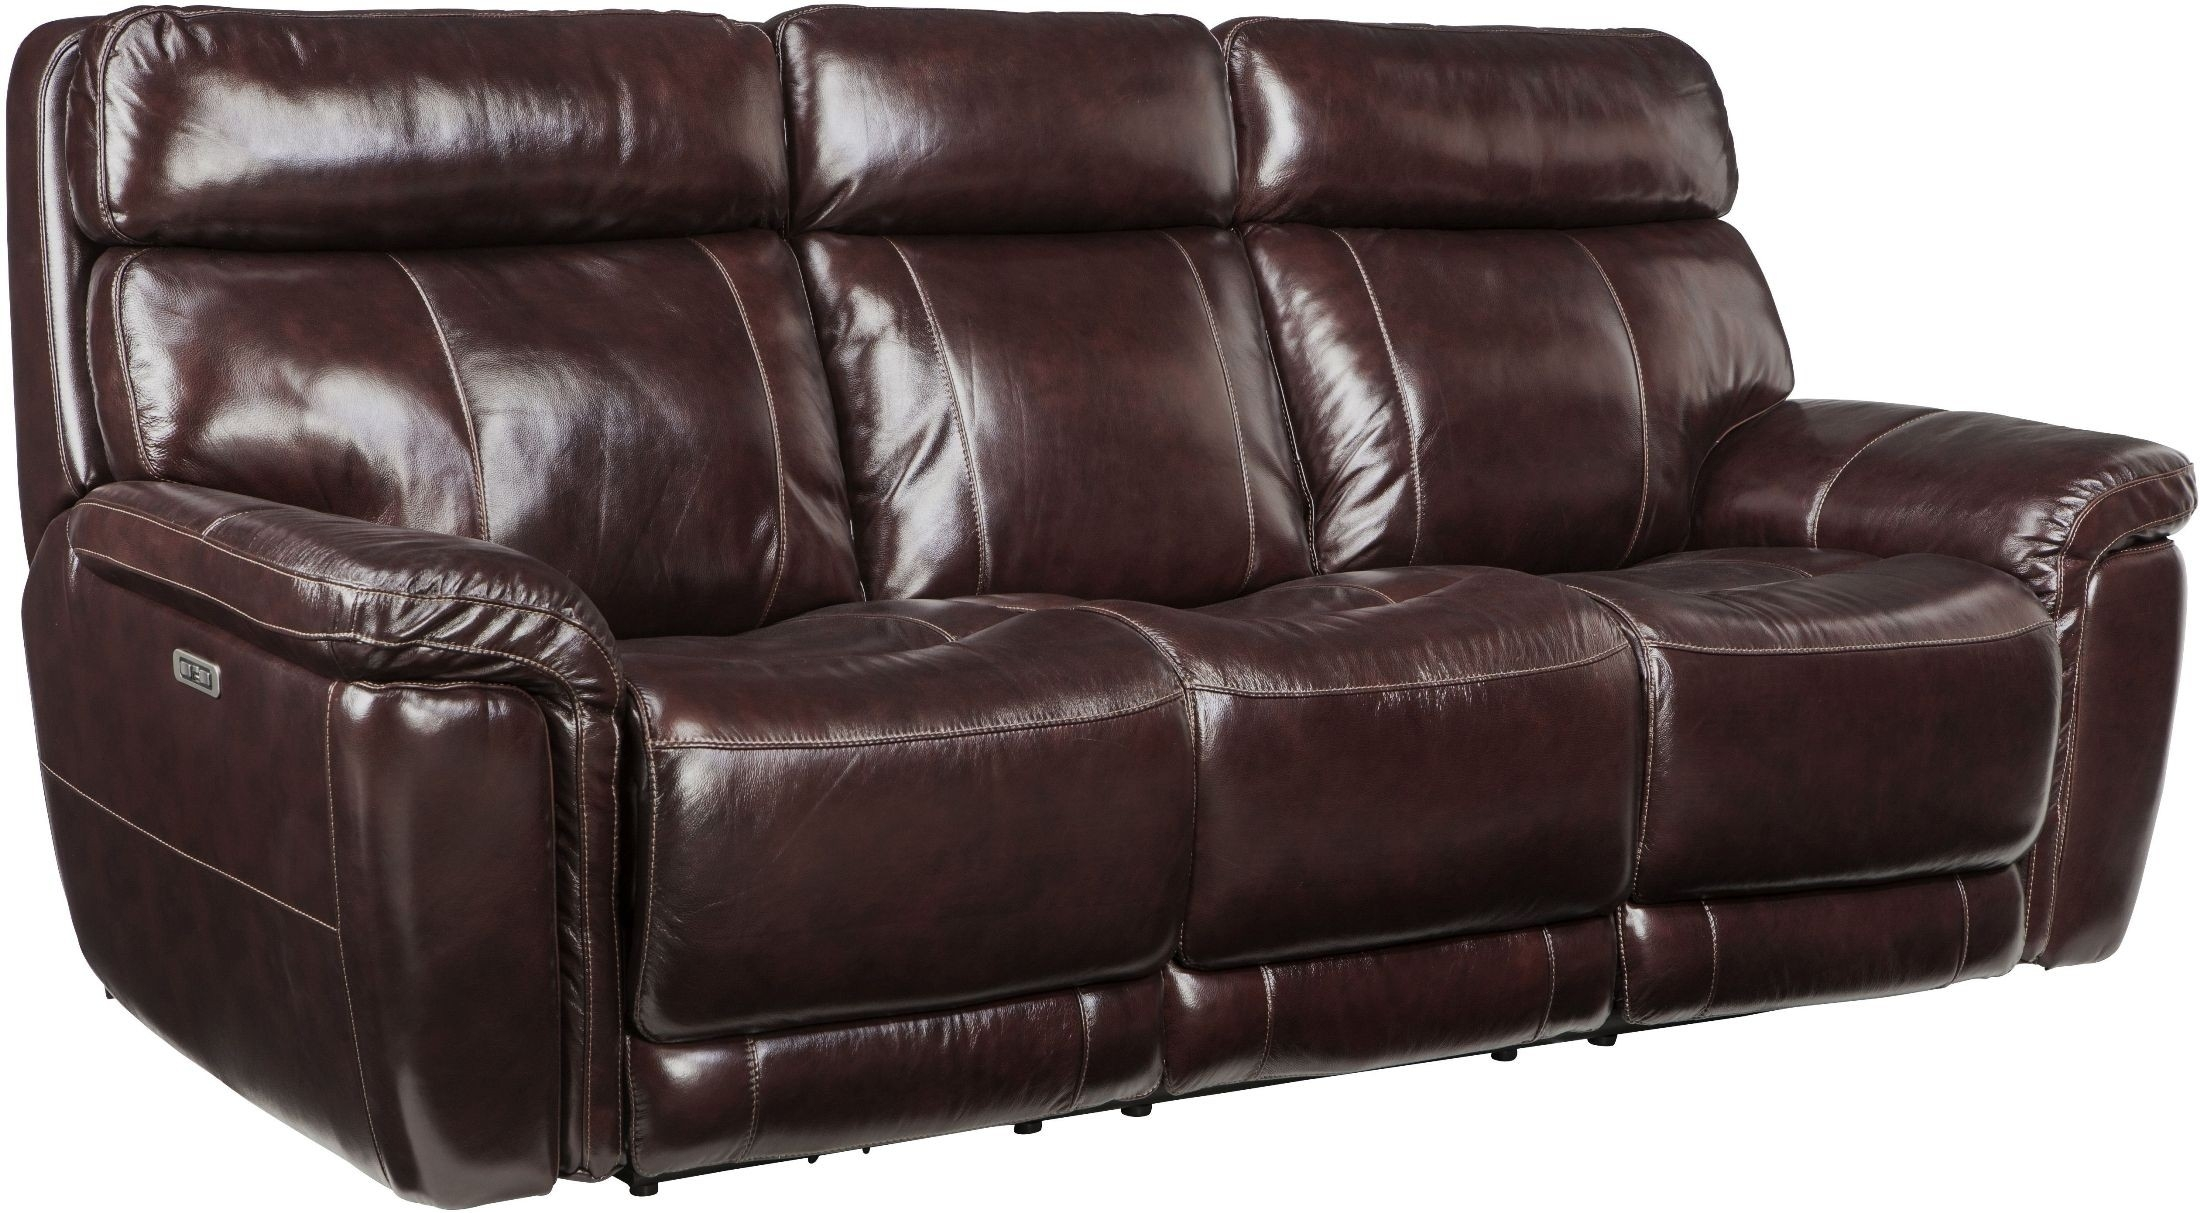 Harris Portofino Blackberry Leather Power Reclining Sofa From Simon within Denali Light Grey 6 Piece Reclining Sectionals With 2 Power Headrests (Image 15 of 30)